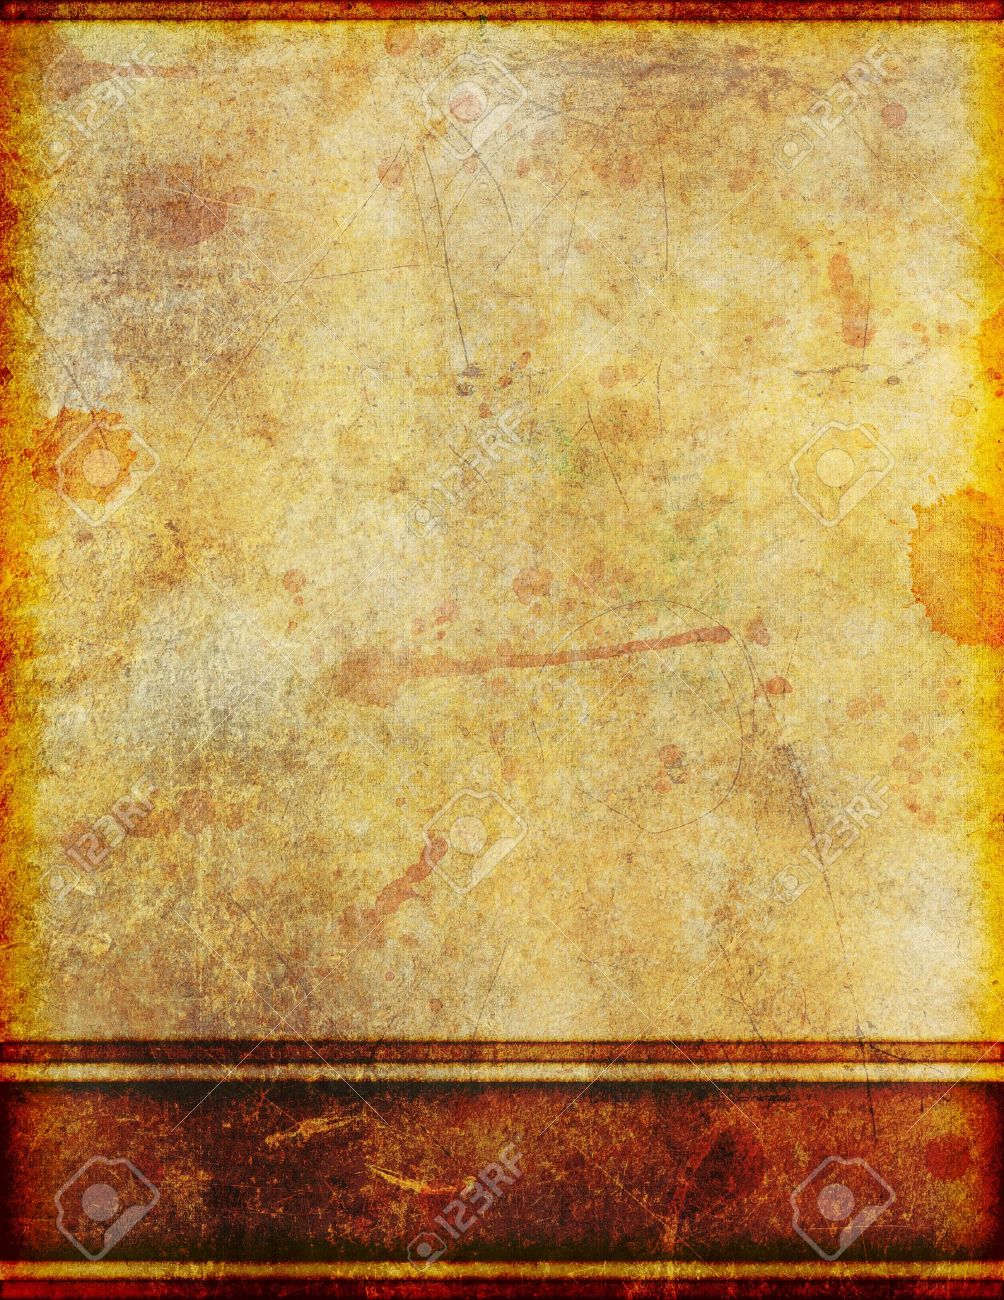 Background image of very old, yellowed and stained grungy parchment with border design. - 12176339